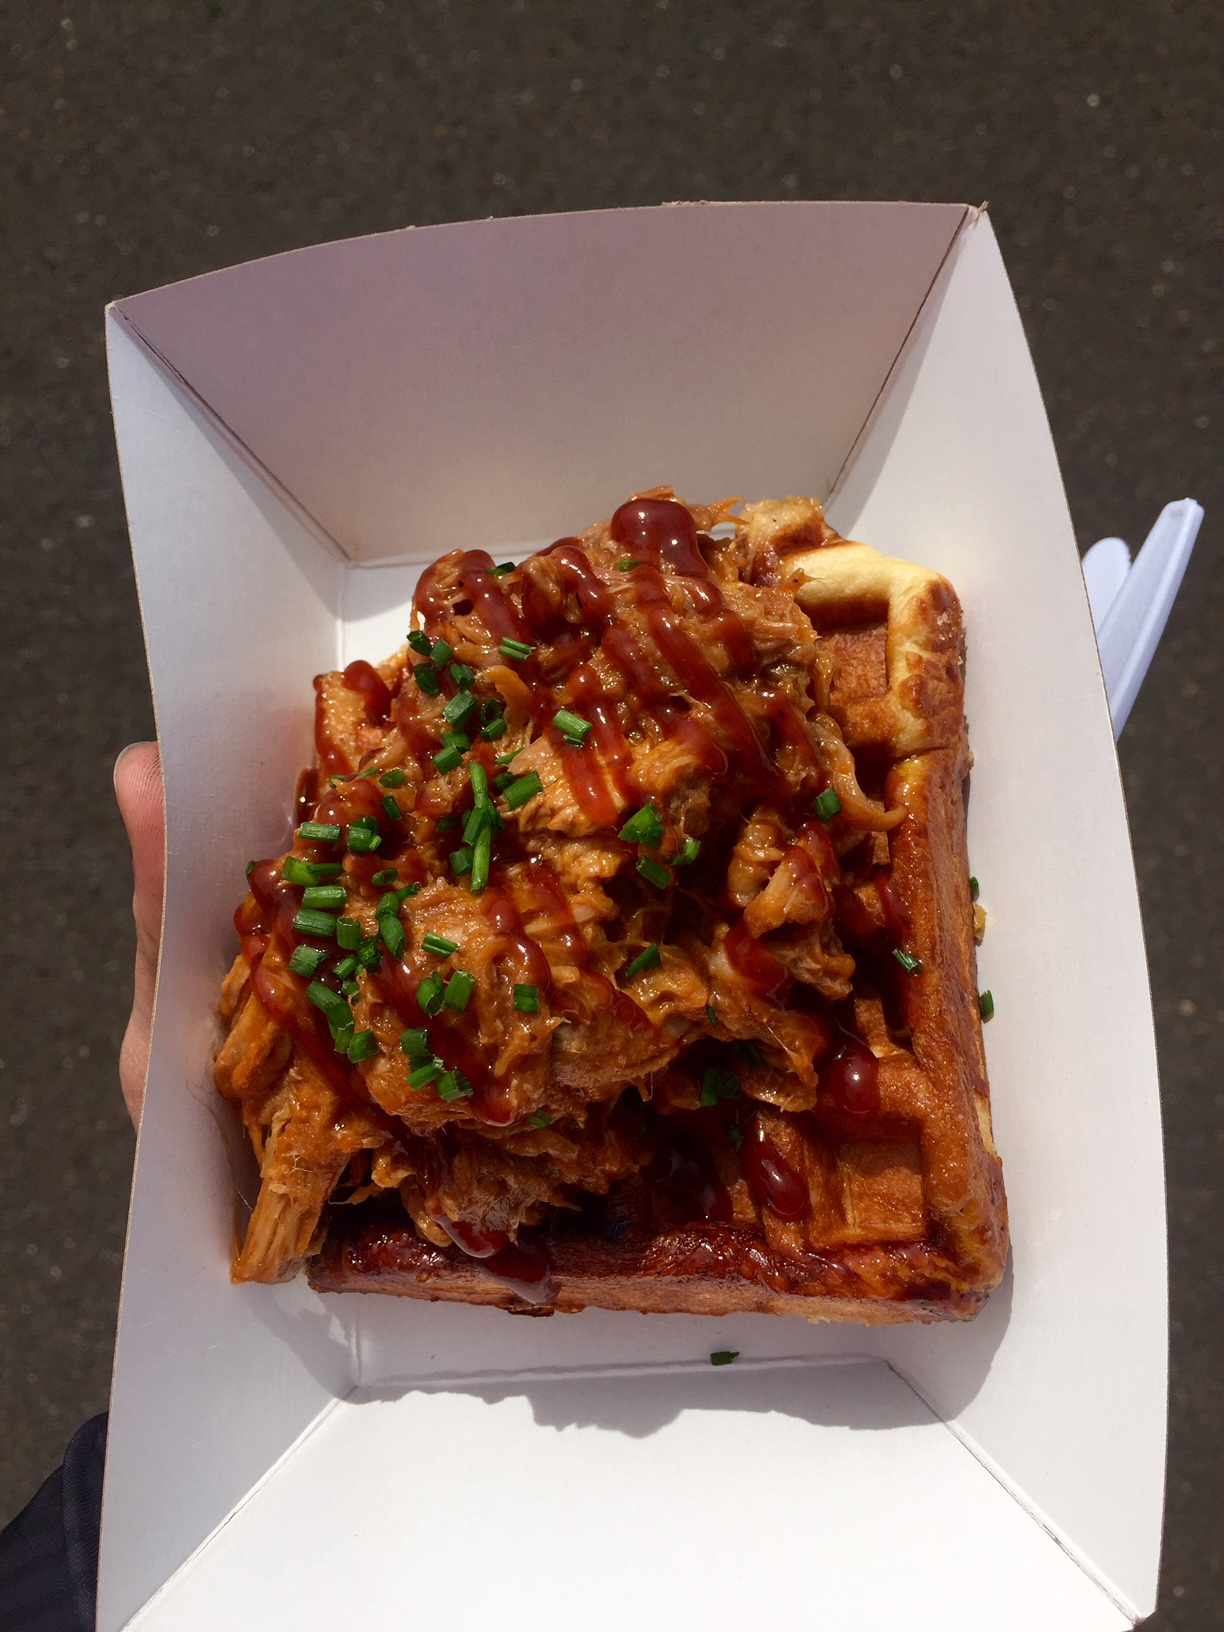 Nina's pulled pork served on top of a Liege style Waffle, delicious.    Photo by Mike McHugh